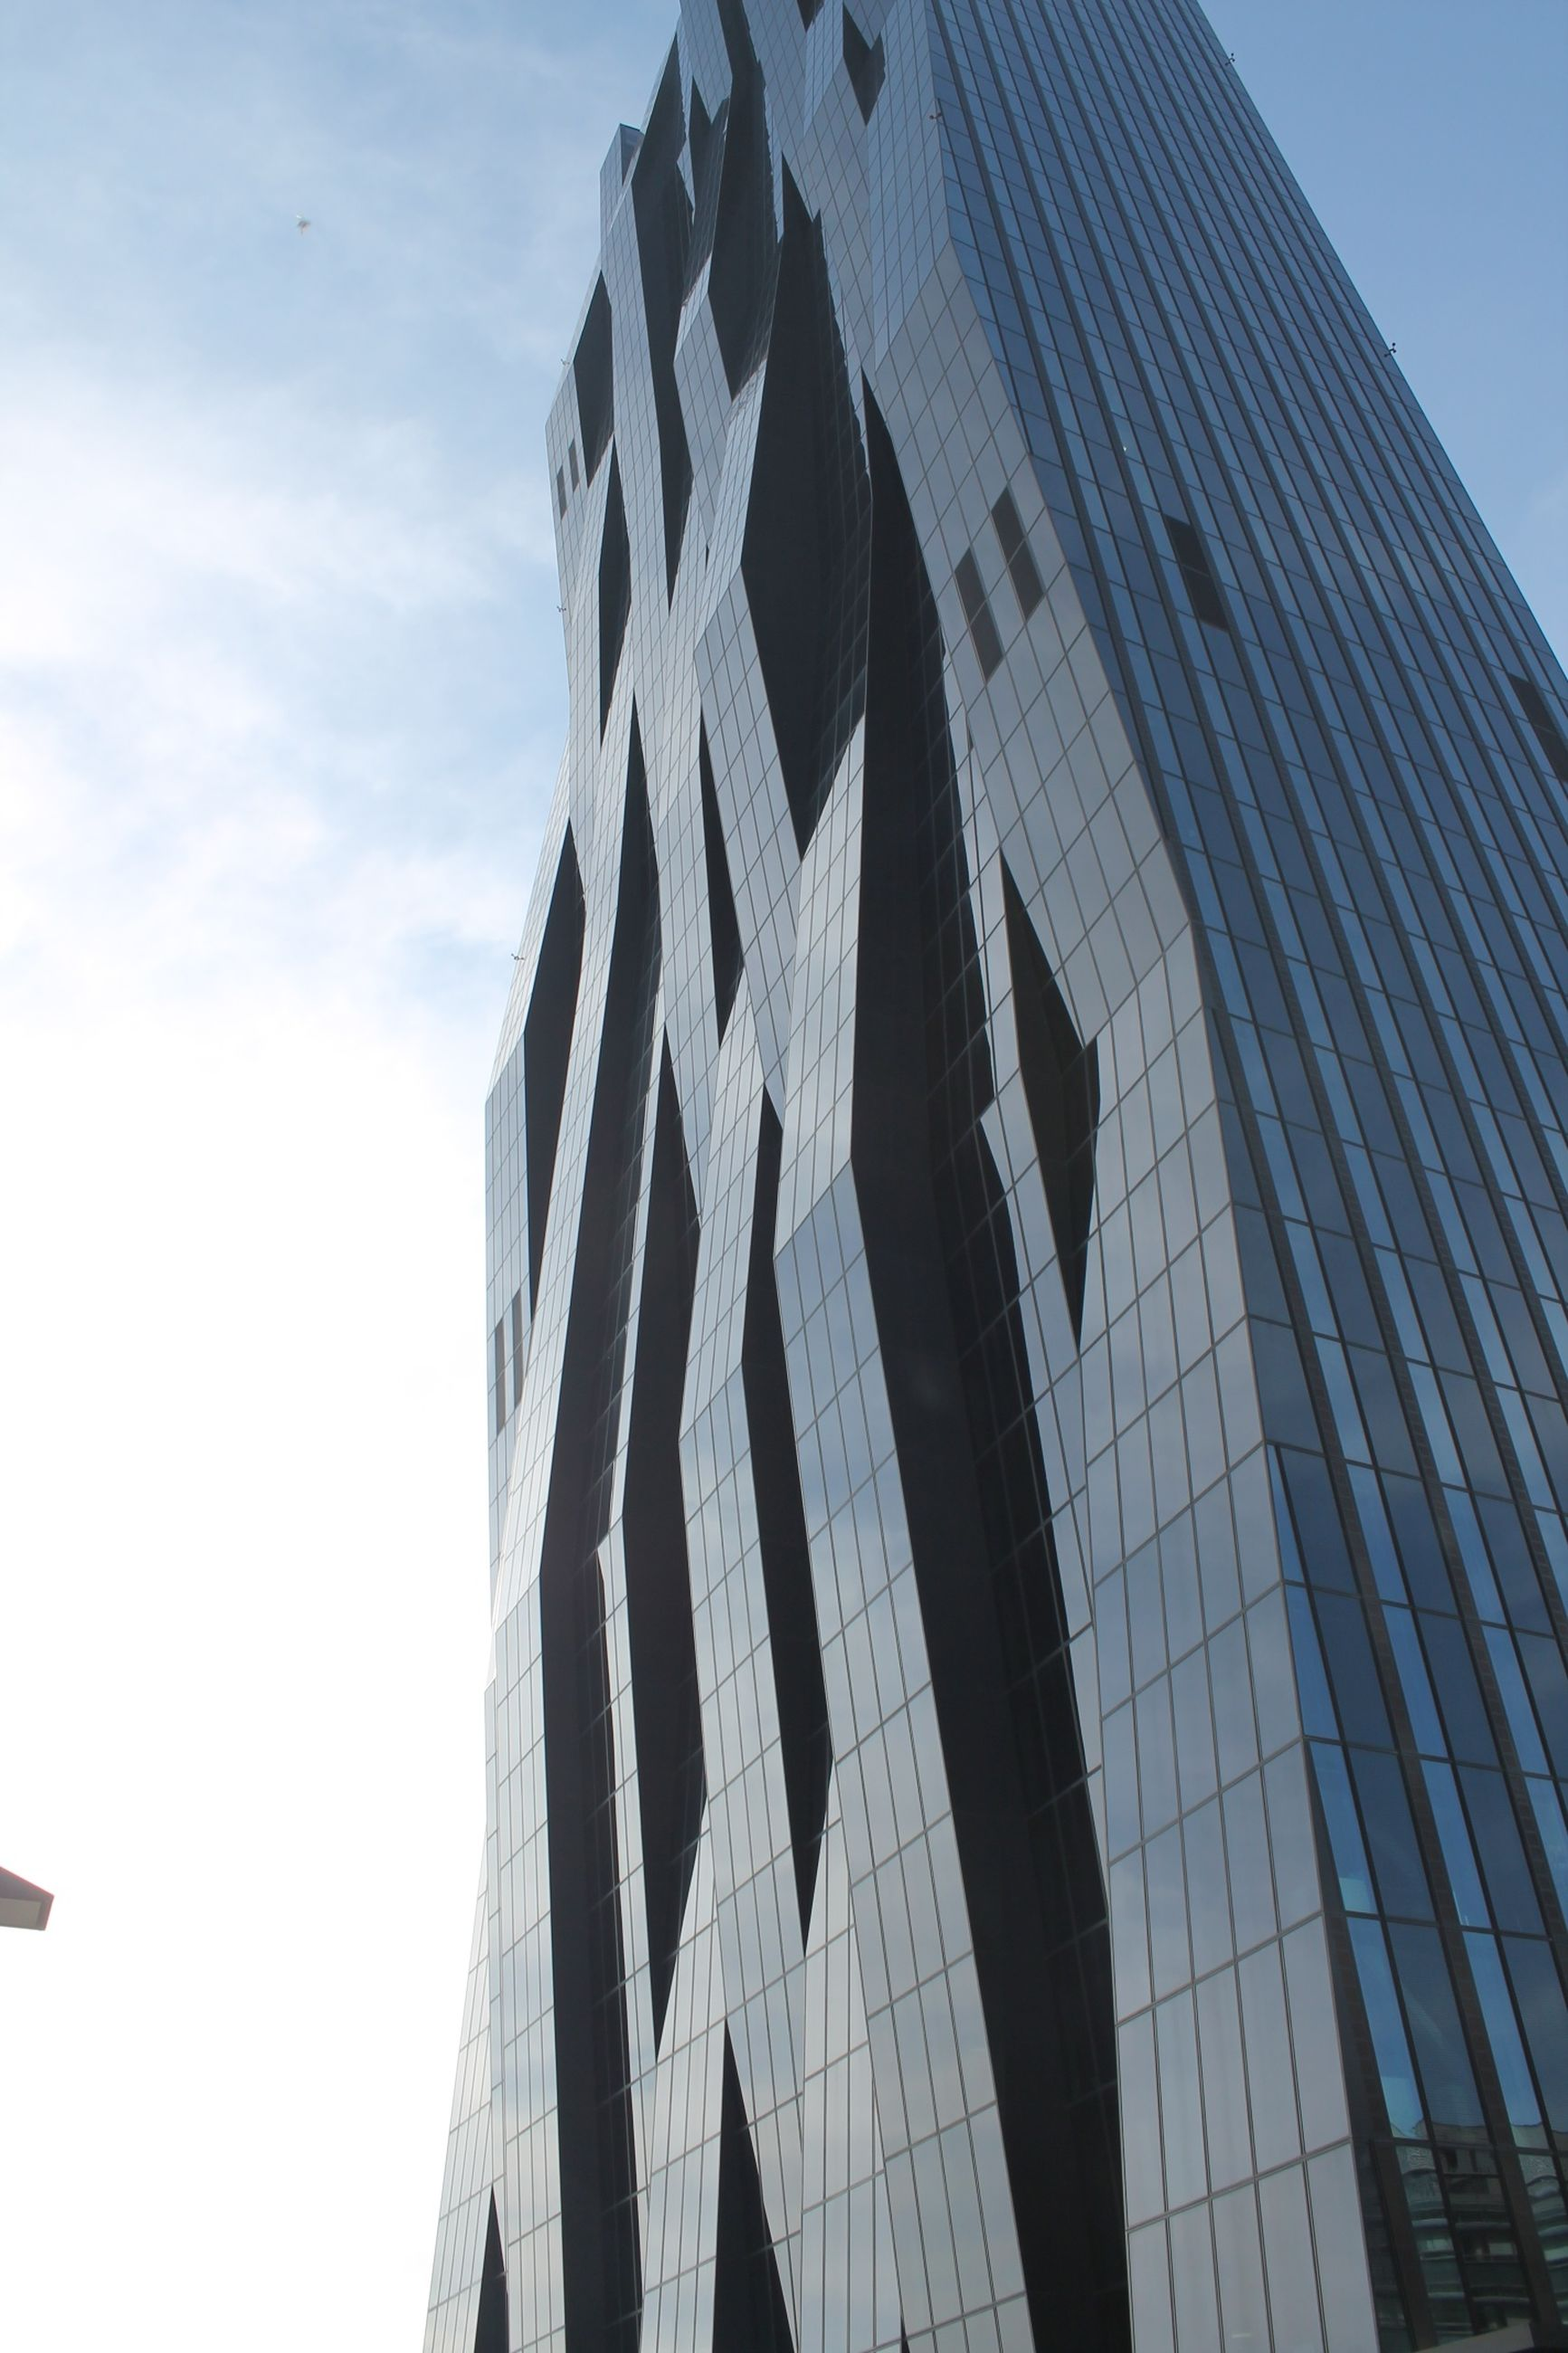 low angle view, building exterior, architecture, built structure, sky, office building, modern, tall - high, skyscraper, building, city, tower, day, outdoors, no people, tall, pattern, clear sky, architectural feature, sunlight